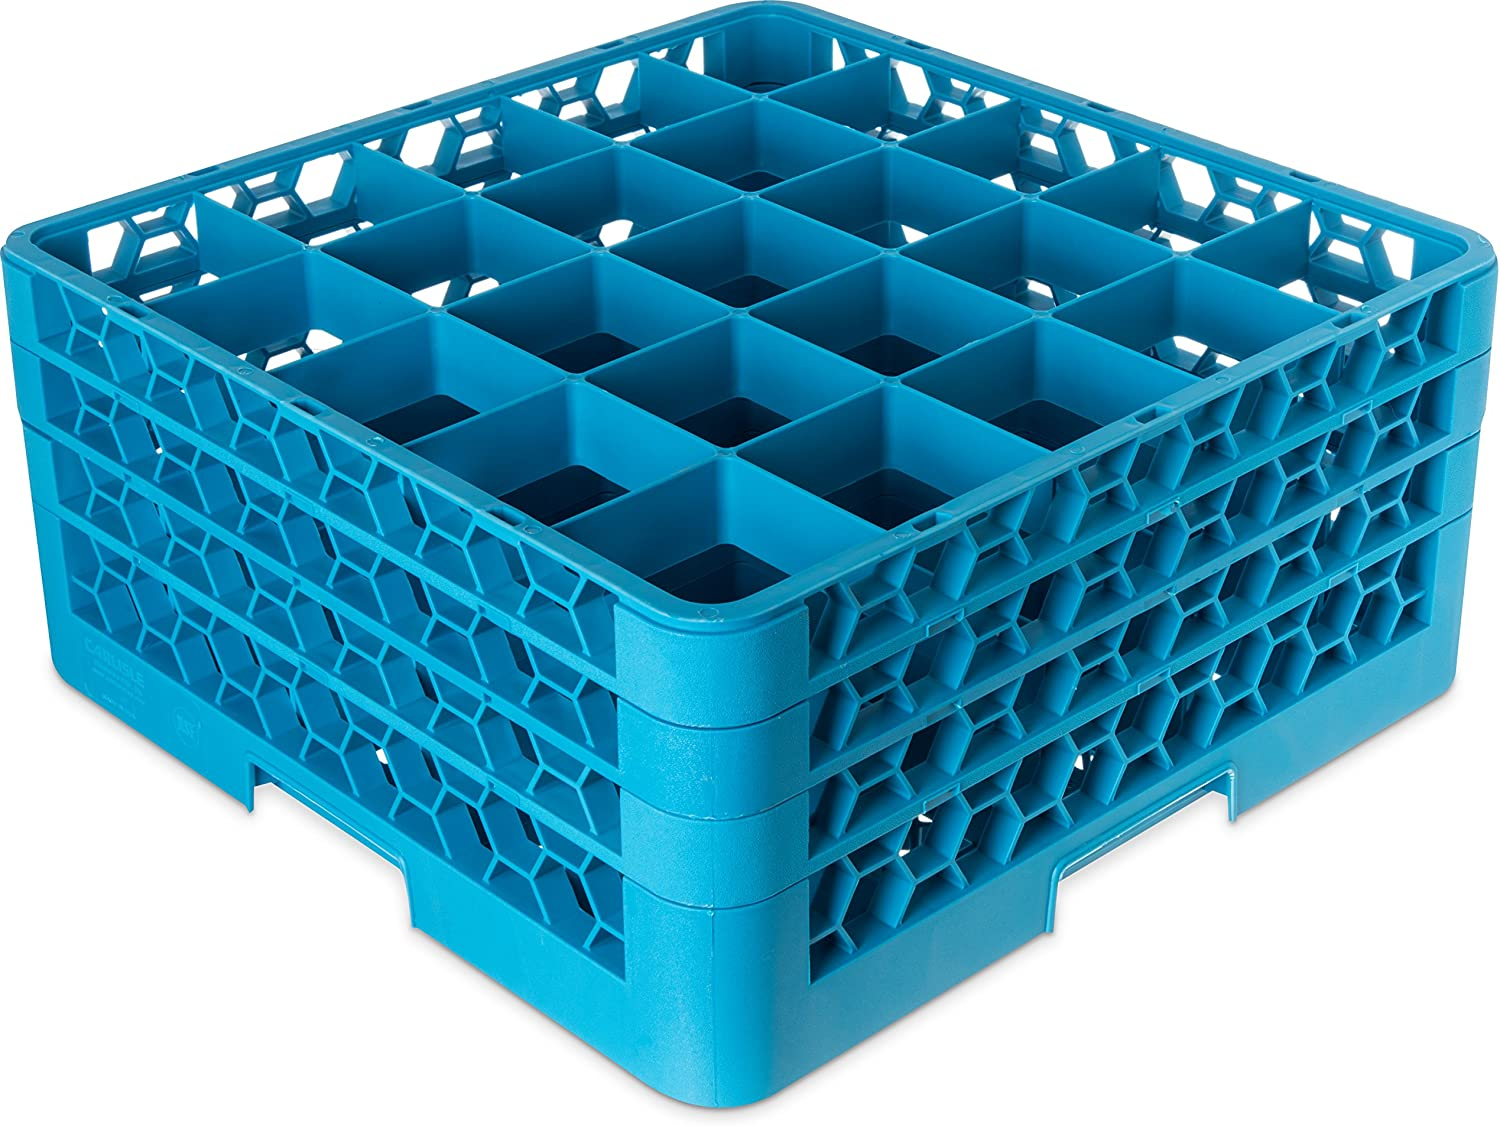 "Carlisle RG25-314 OptiClean 25 Compartment Glass Rack with 3 Extenders, 8.72"", Polypropylene, Carlisle Blue"